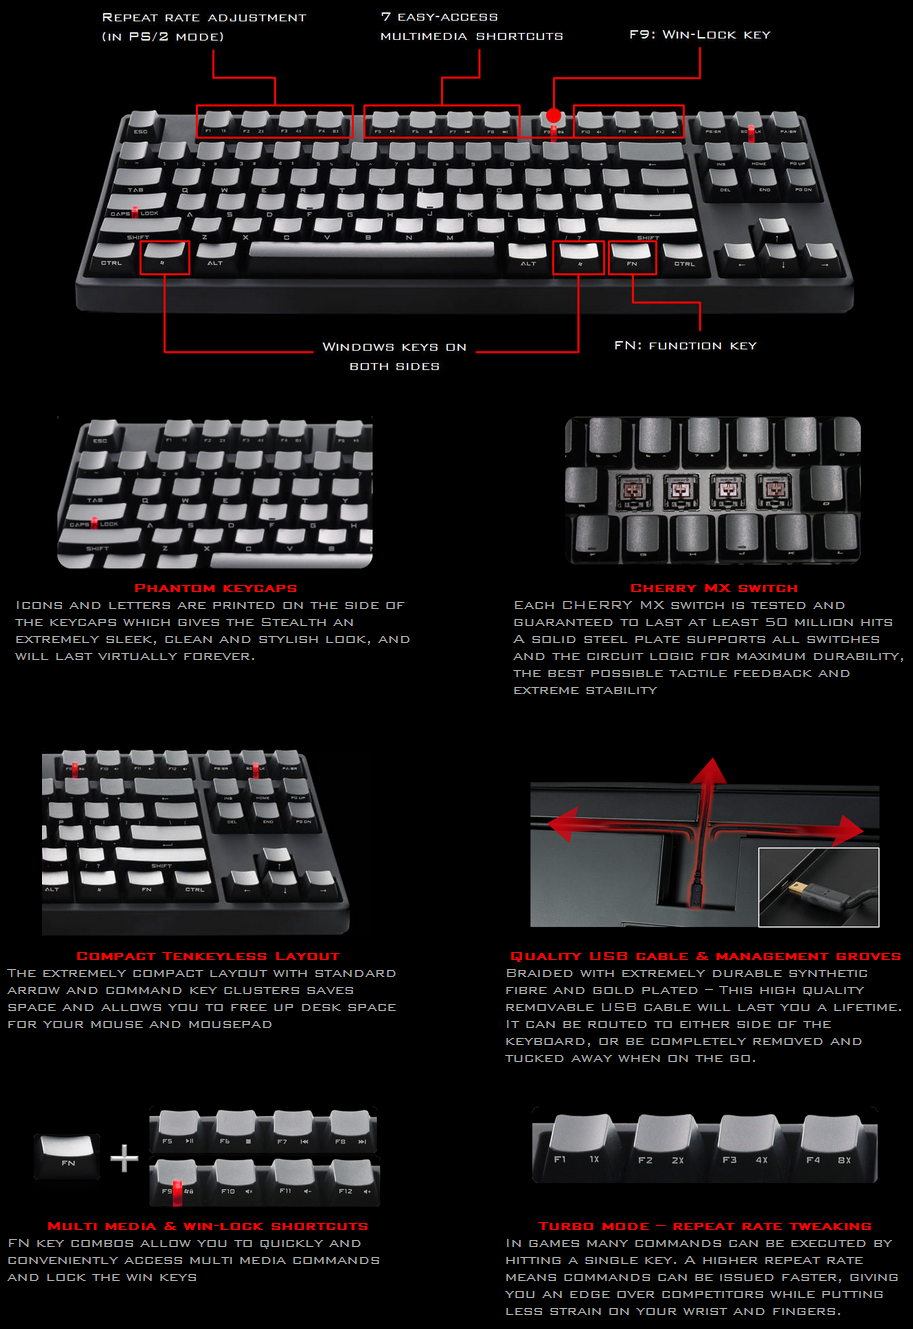 Cooler Master Storm Stealth Cherry MX Blue Mechanical Keyboard features